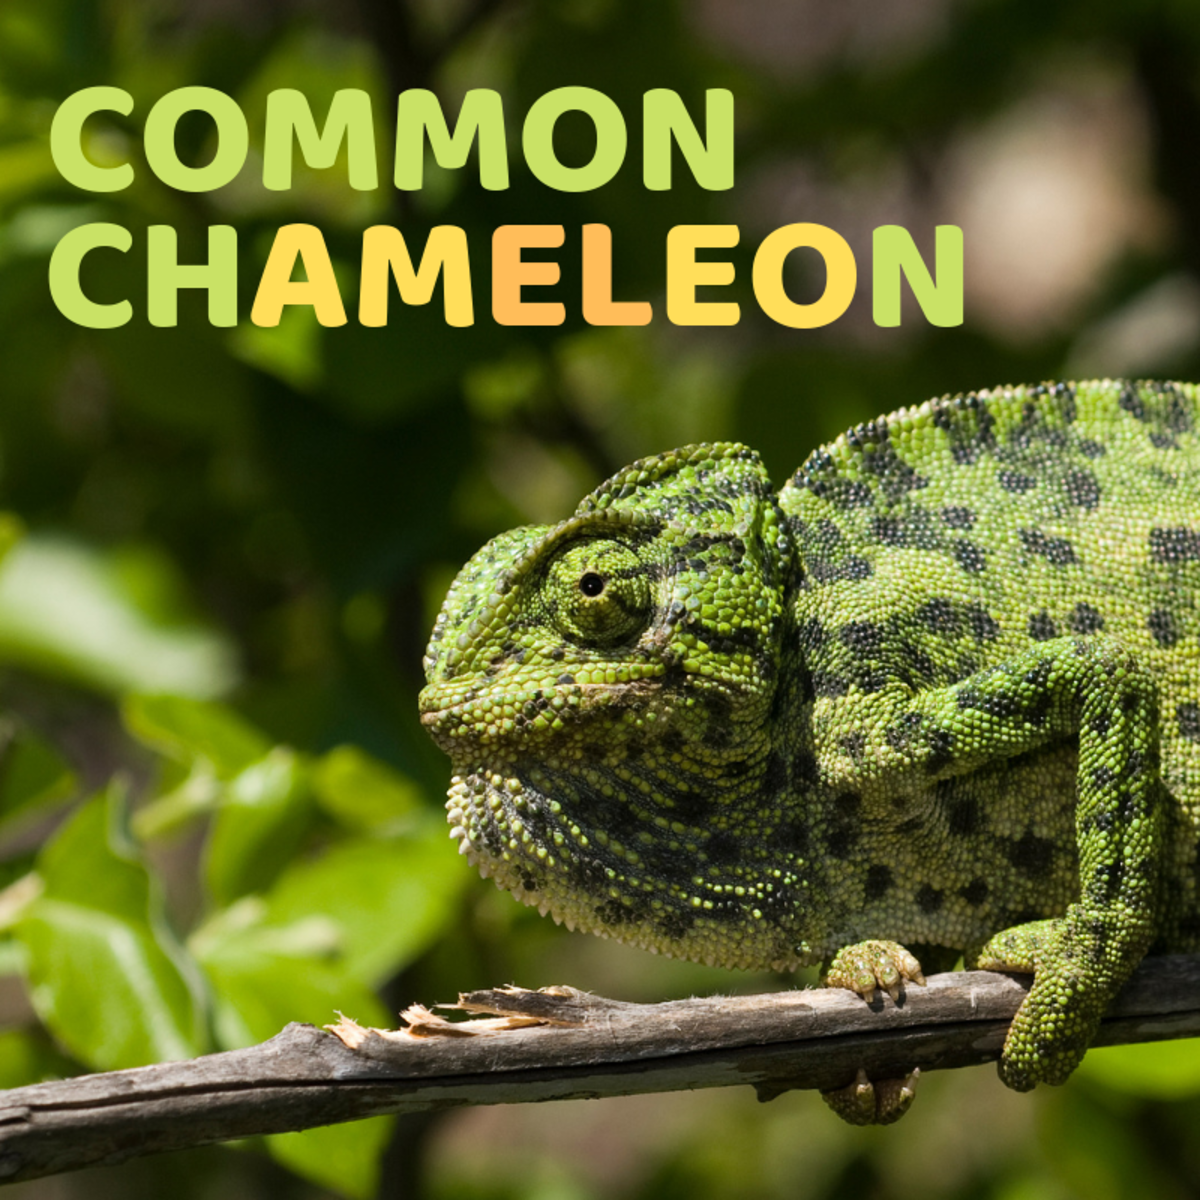 Meet the only chameleon that can be found in the wild in European countries—Chamaeleo chamaeleon.